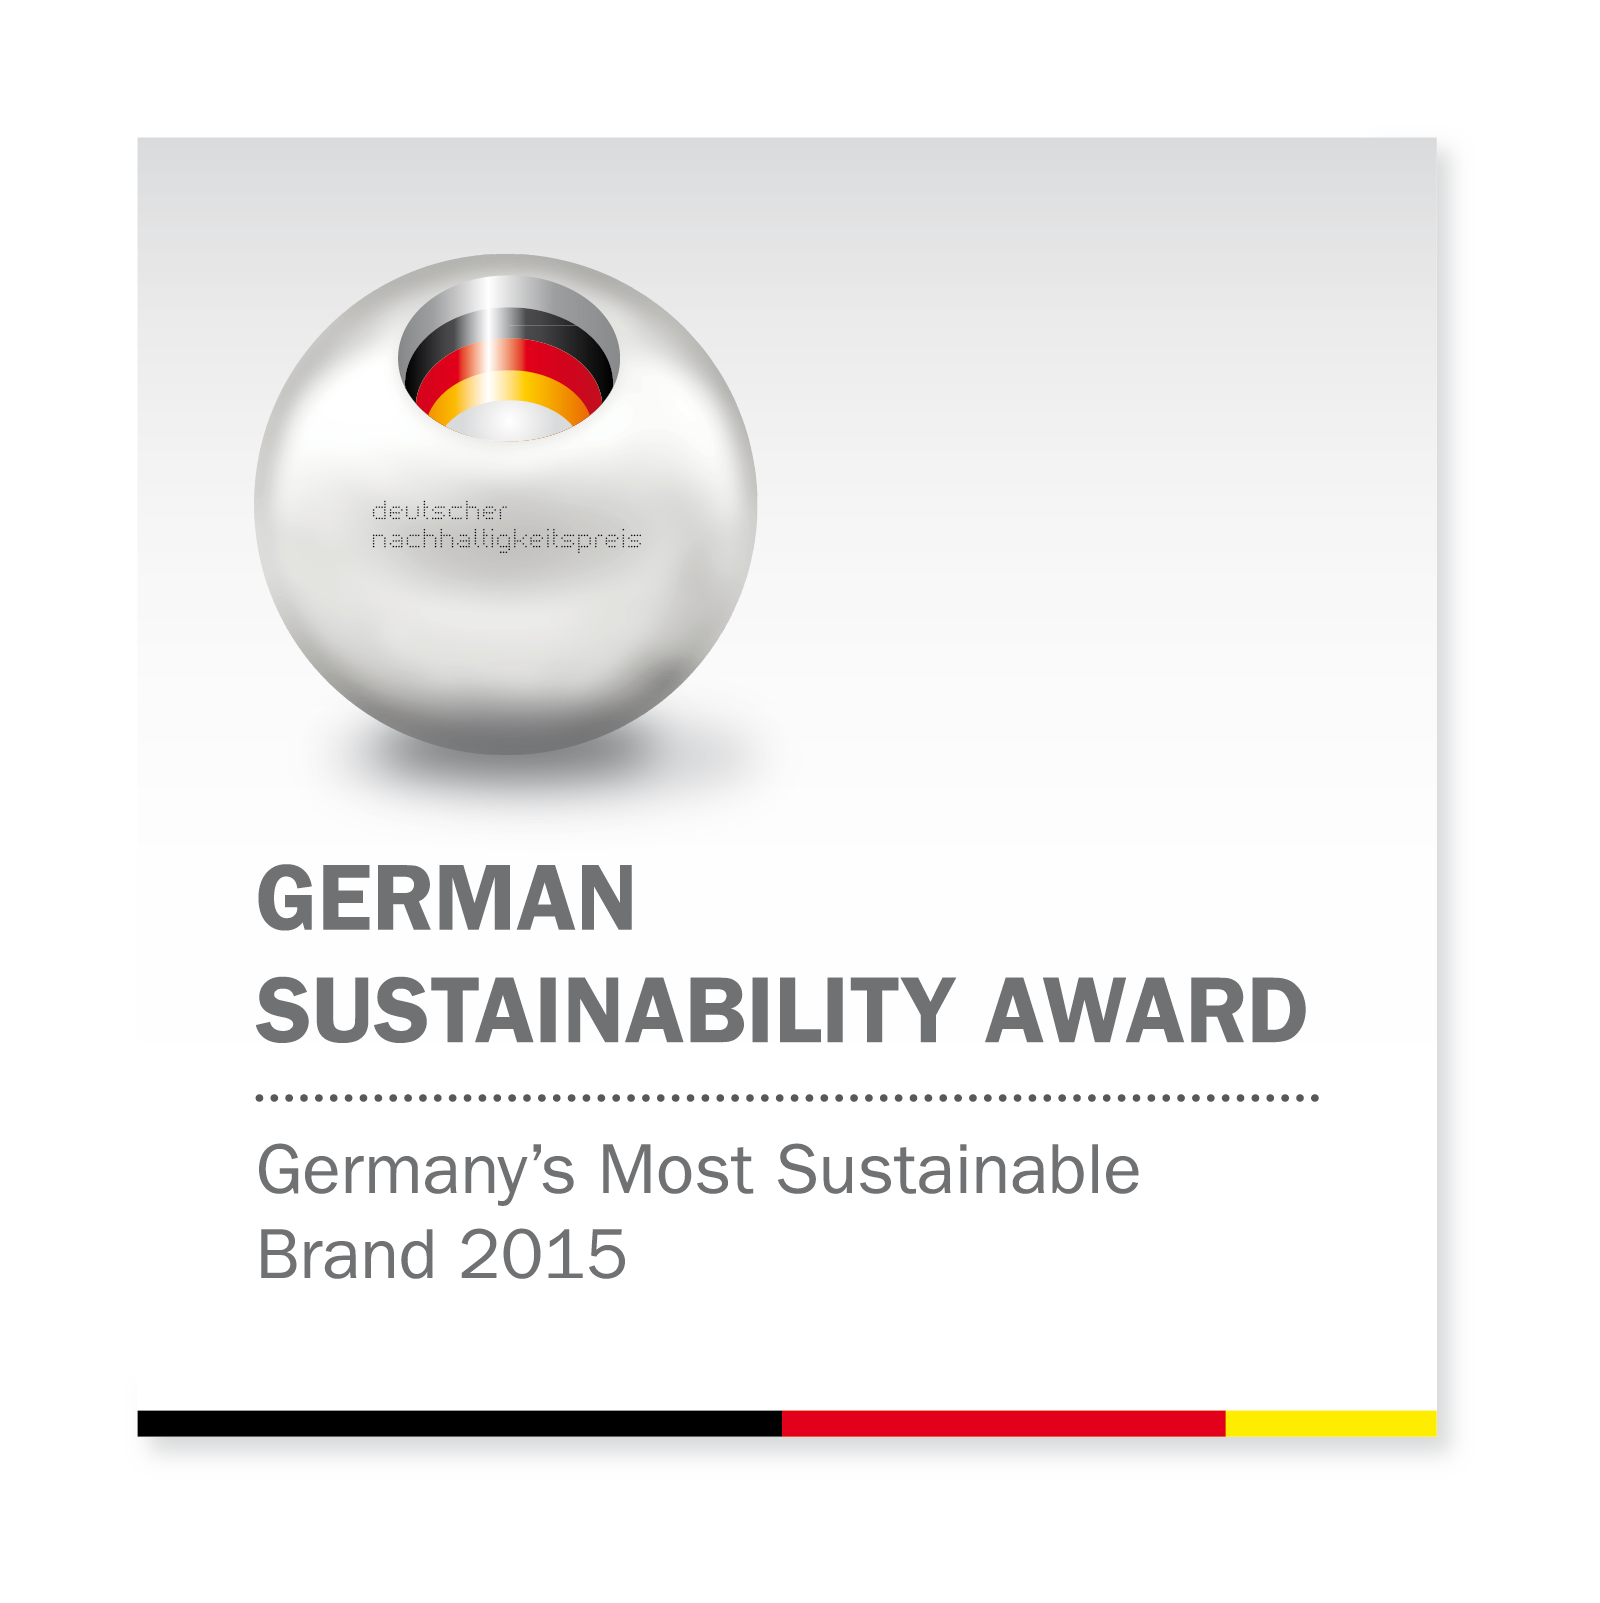 German Sustainability Award 2015